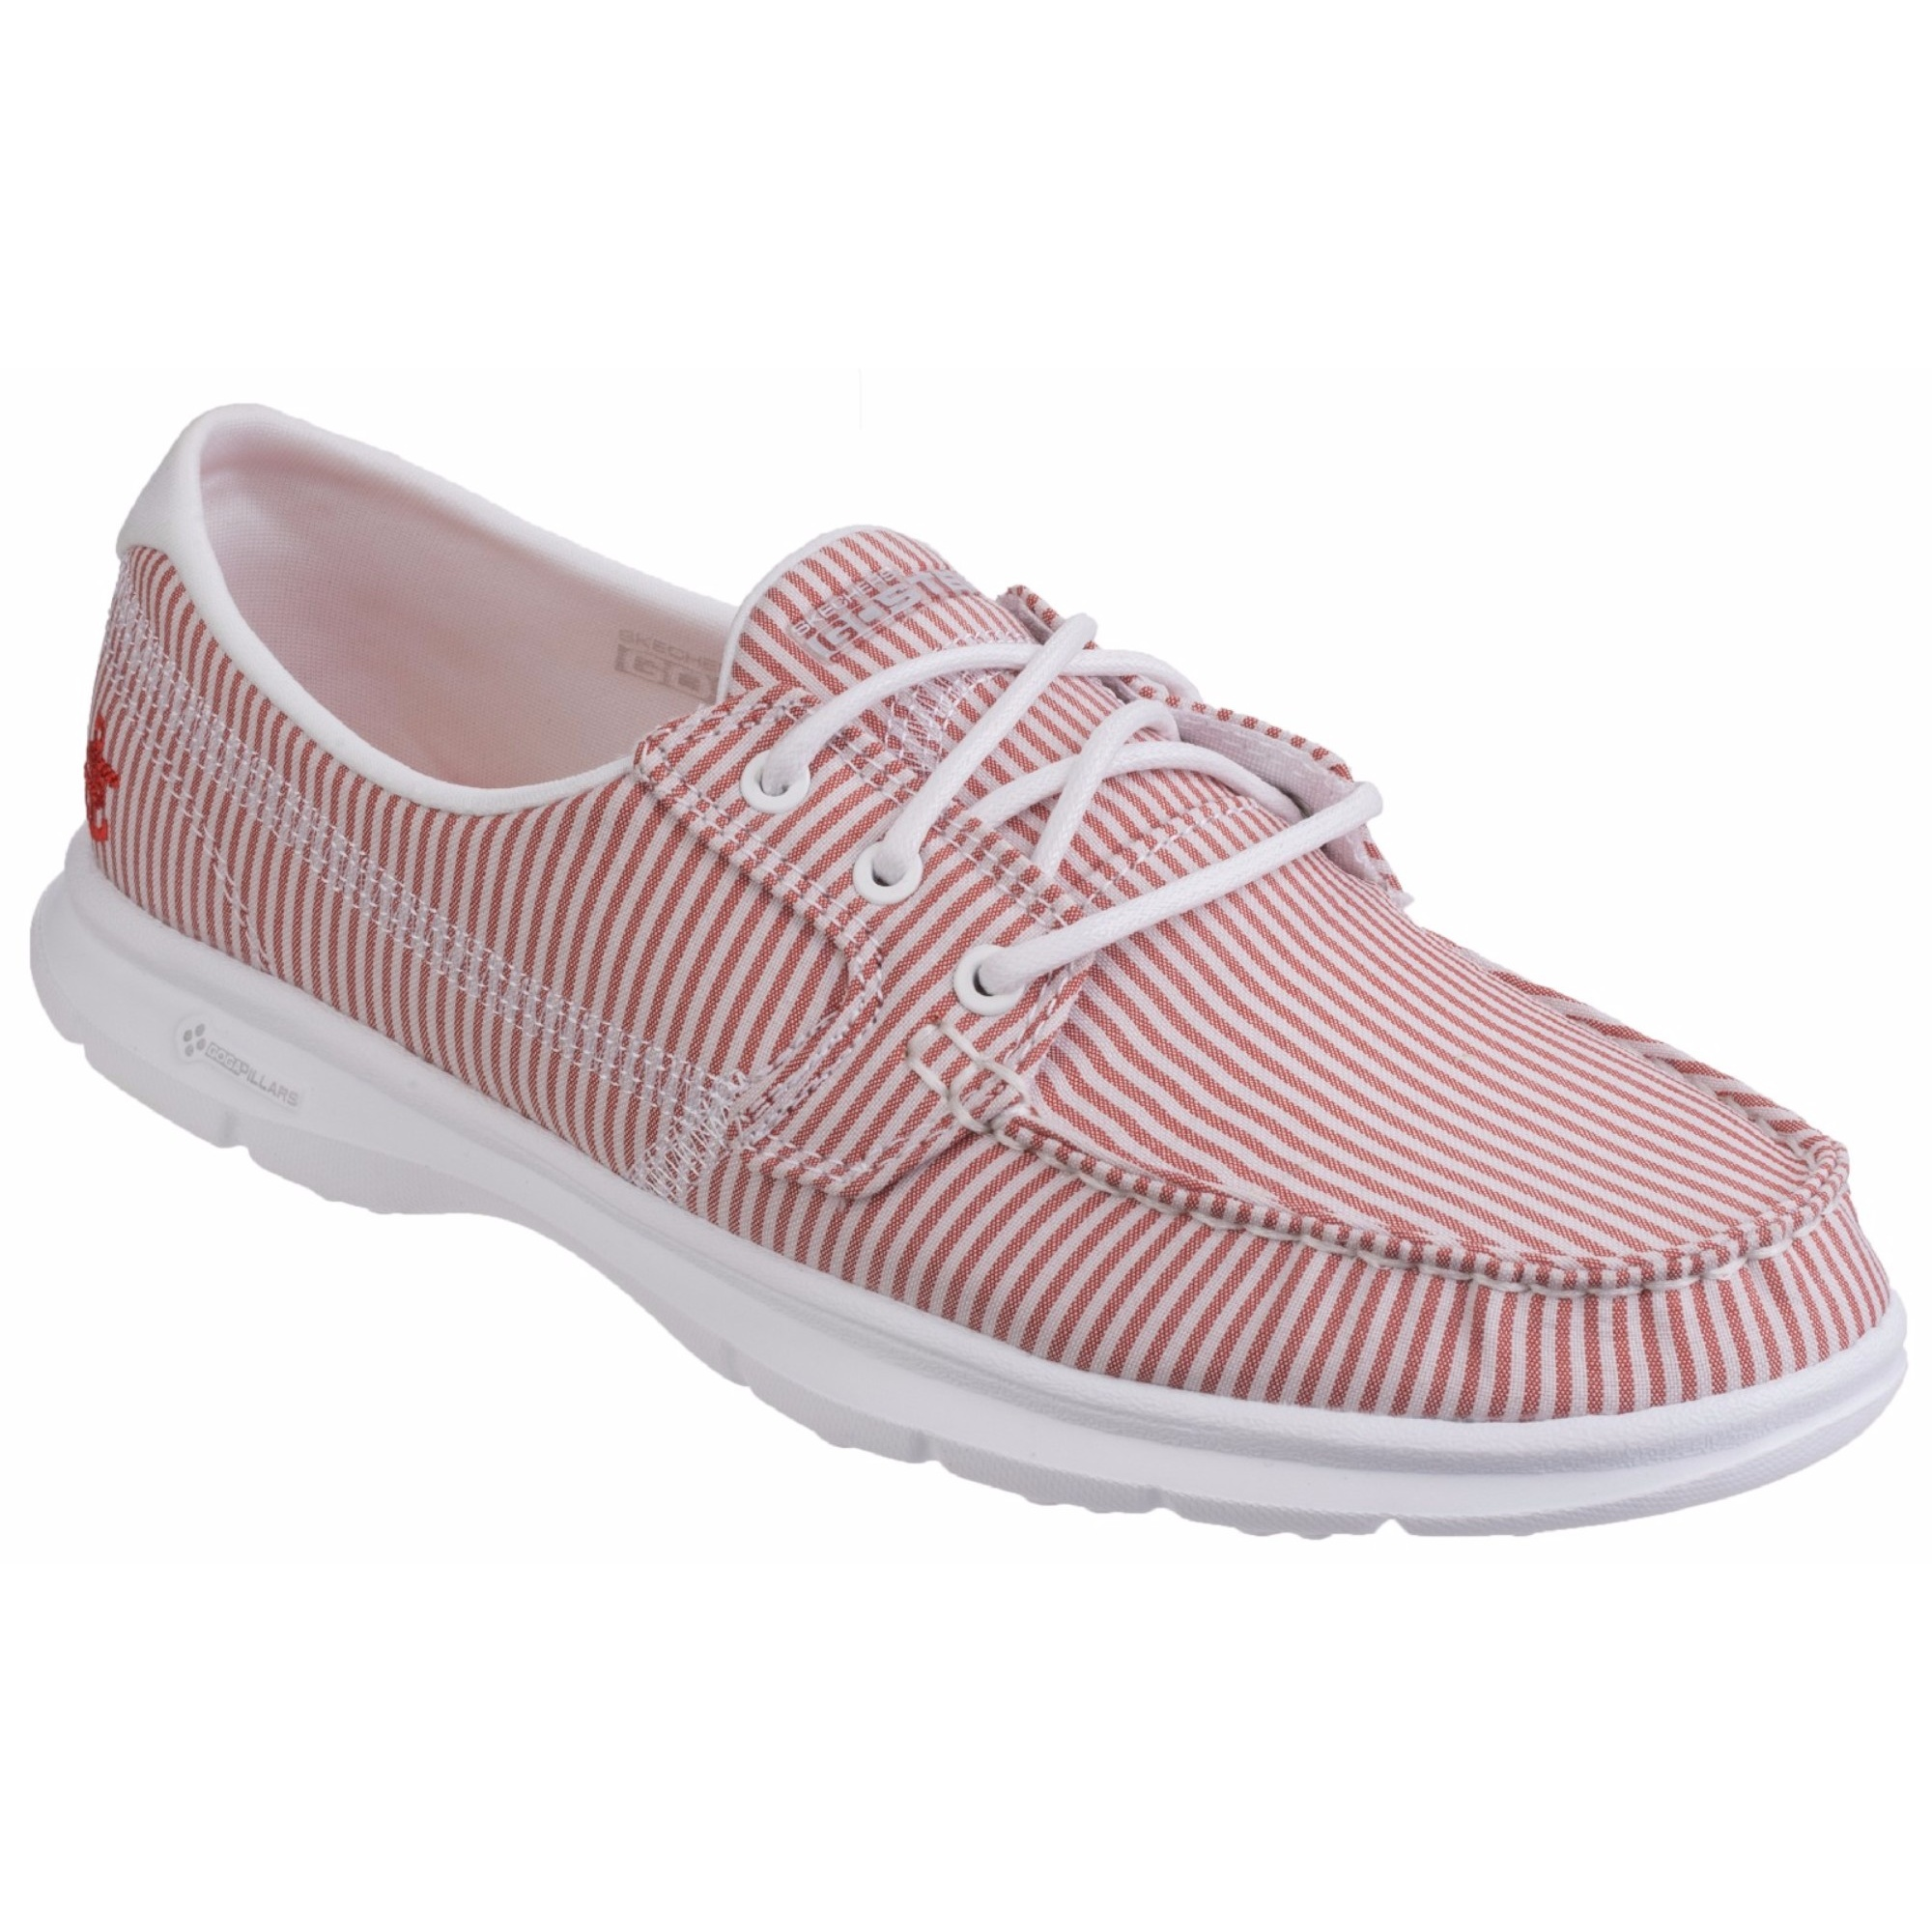 Skechers Womens/Ladies Womens/Ladies Womens/Ladies Go Step Sandy Striped Casual Shoes (FS4208) 41a9d6